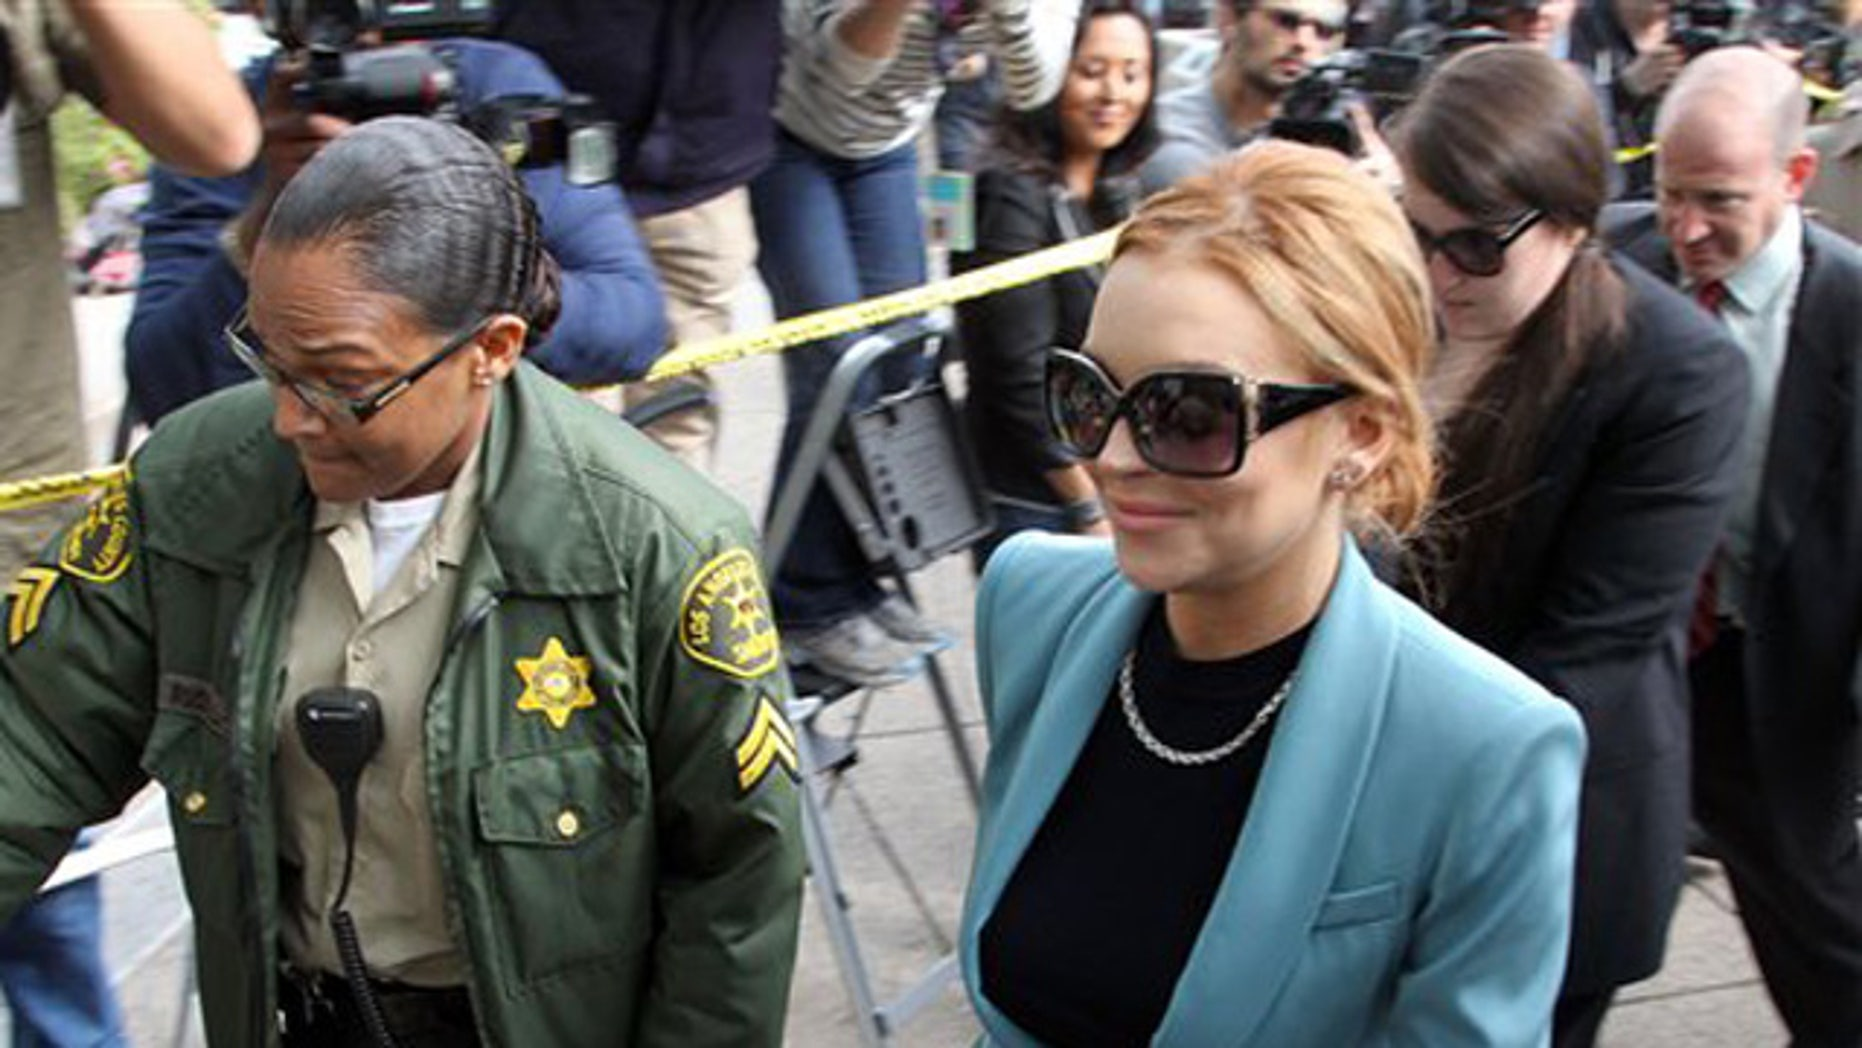 Lindsay Lohan arrives for a progress report on her probation for theft charges at Los Angeles Superior Court Thursday, March 29, 2012. Lohan will update a judge on her progress on strict probation requirements that have had her doing cleanup duty at the county morgue and attending regular psychotherapy sessions since late last year. Superior Court Judge Stephanie Sautner has said she will end Lohan's probation on a 2007 drunken driving case on Thursday if she completes the requirements. (AP Photo/Reed Saxon)